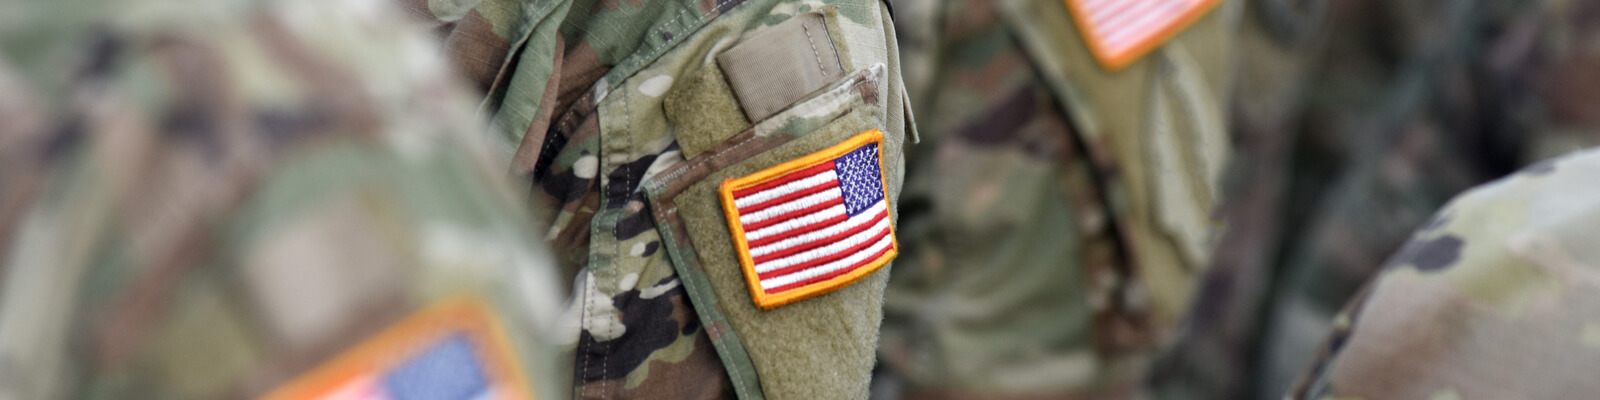 SBA Loans for Veterans: Loans, Training and Contracts